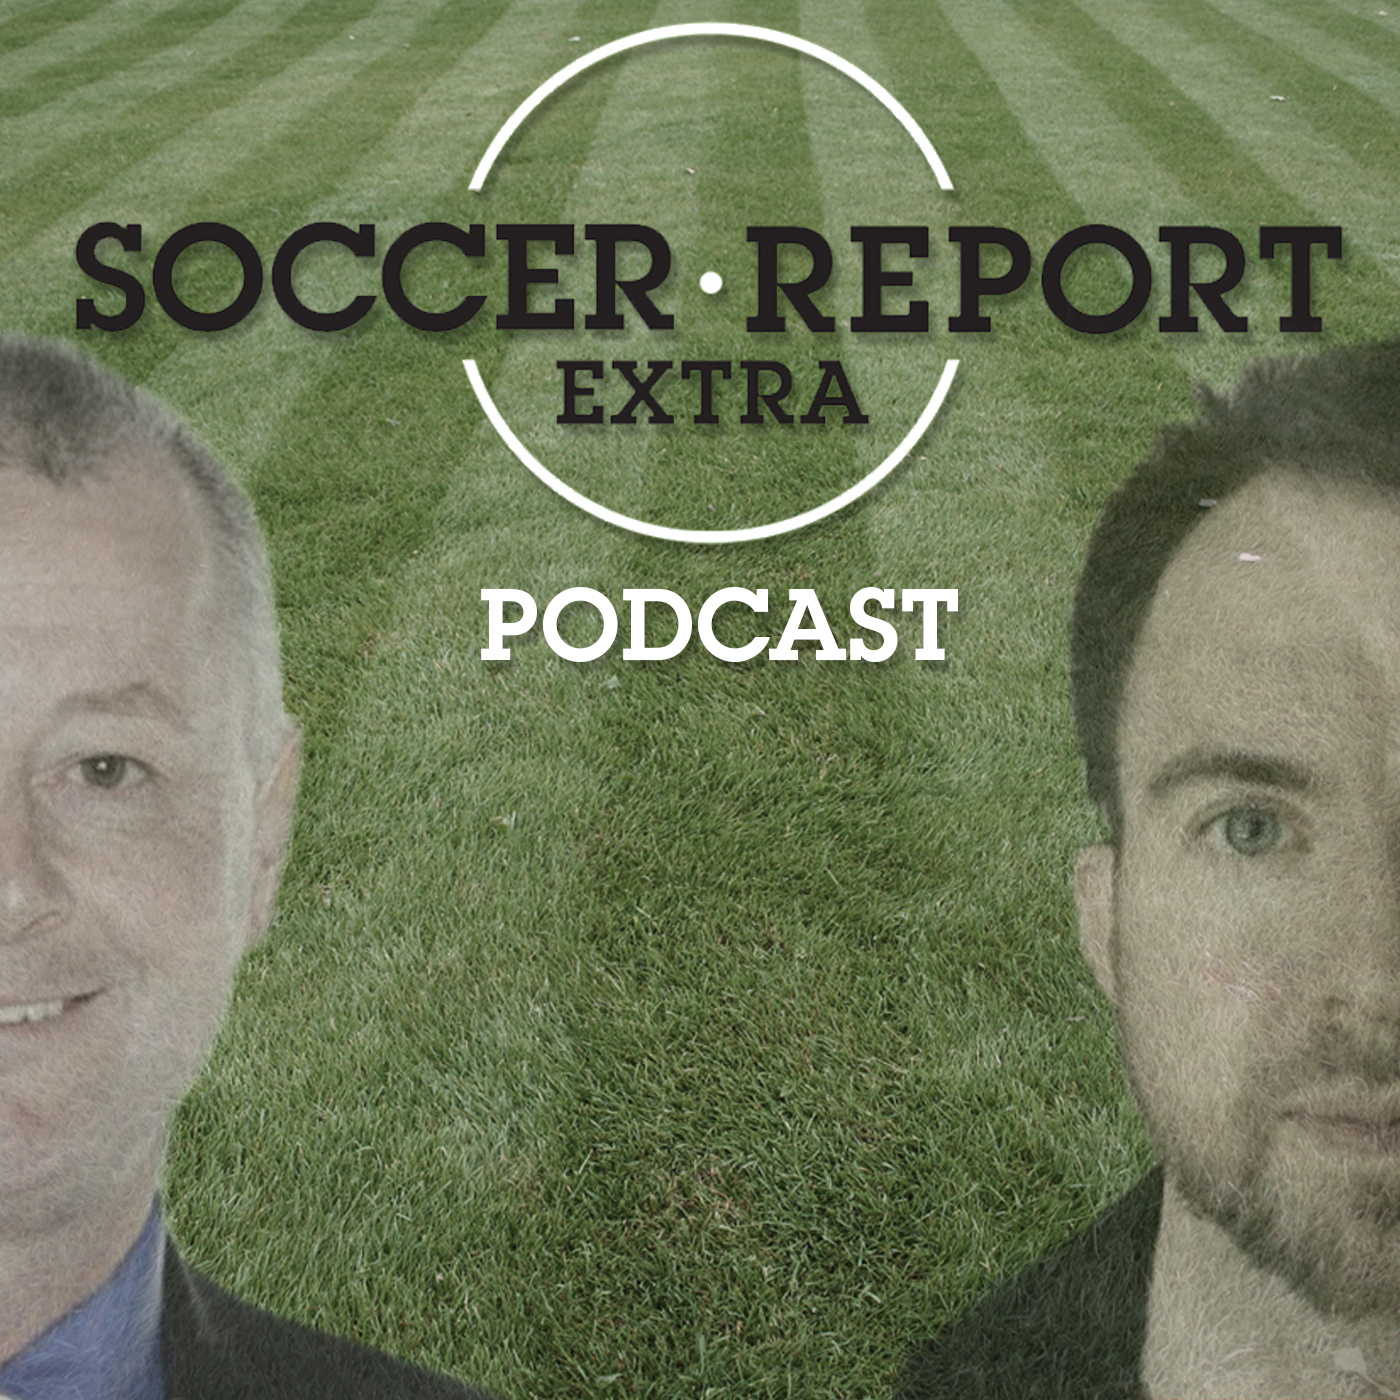 Soccer Report Extra Podcast 29: Madly Off In All Directions